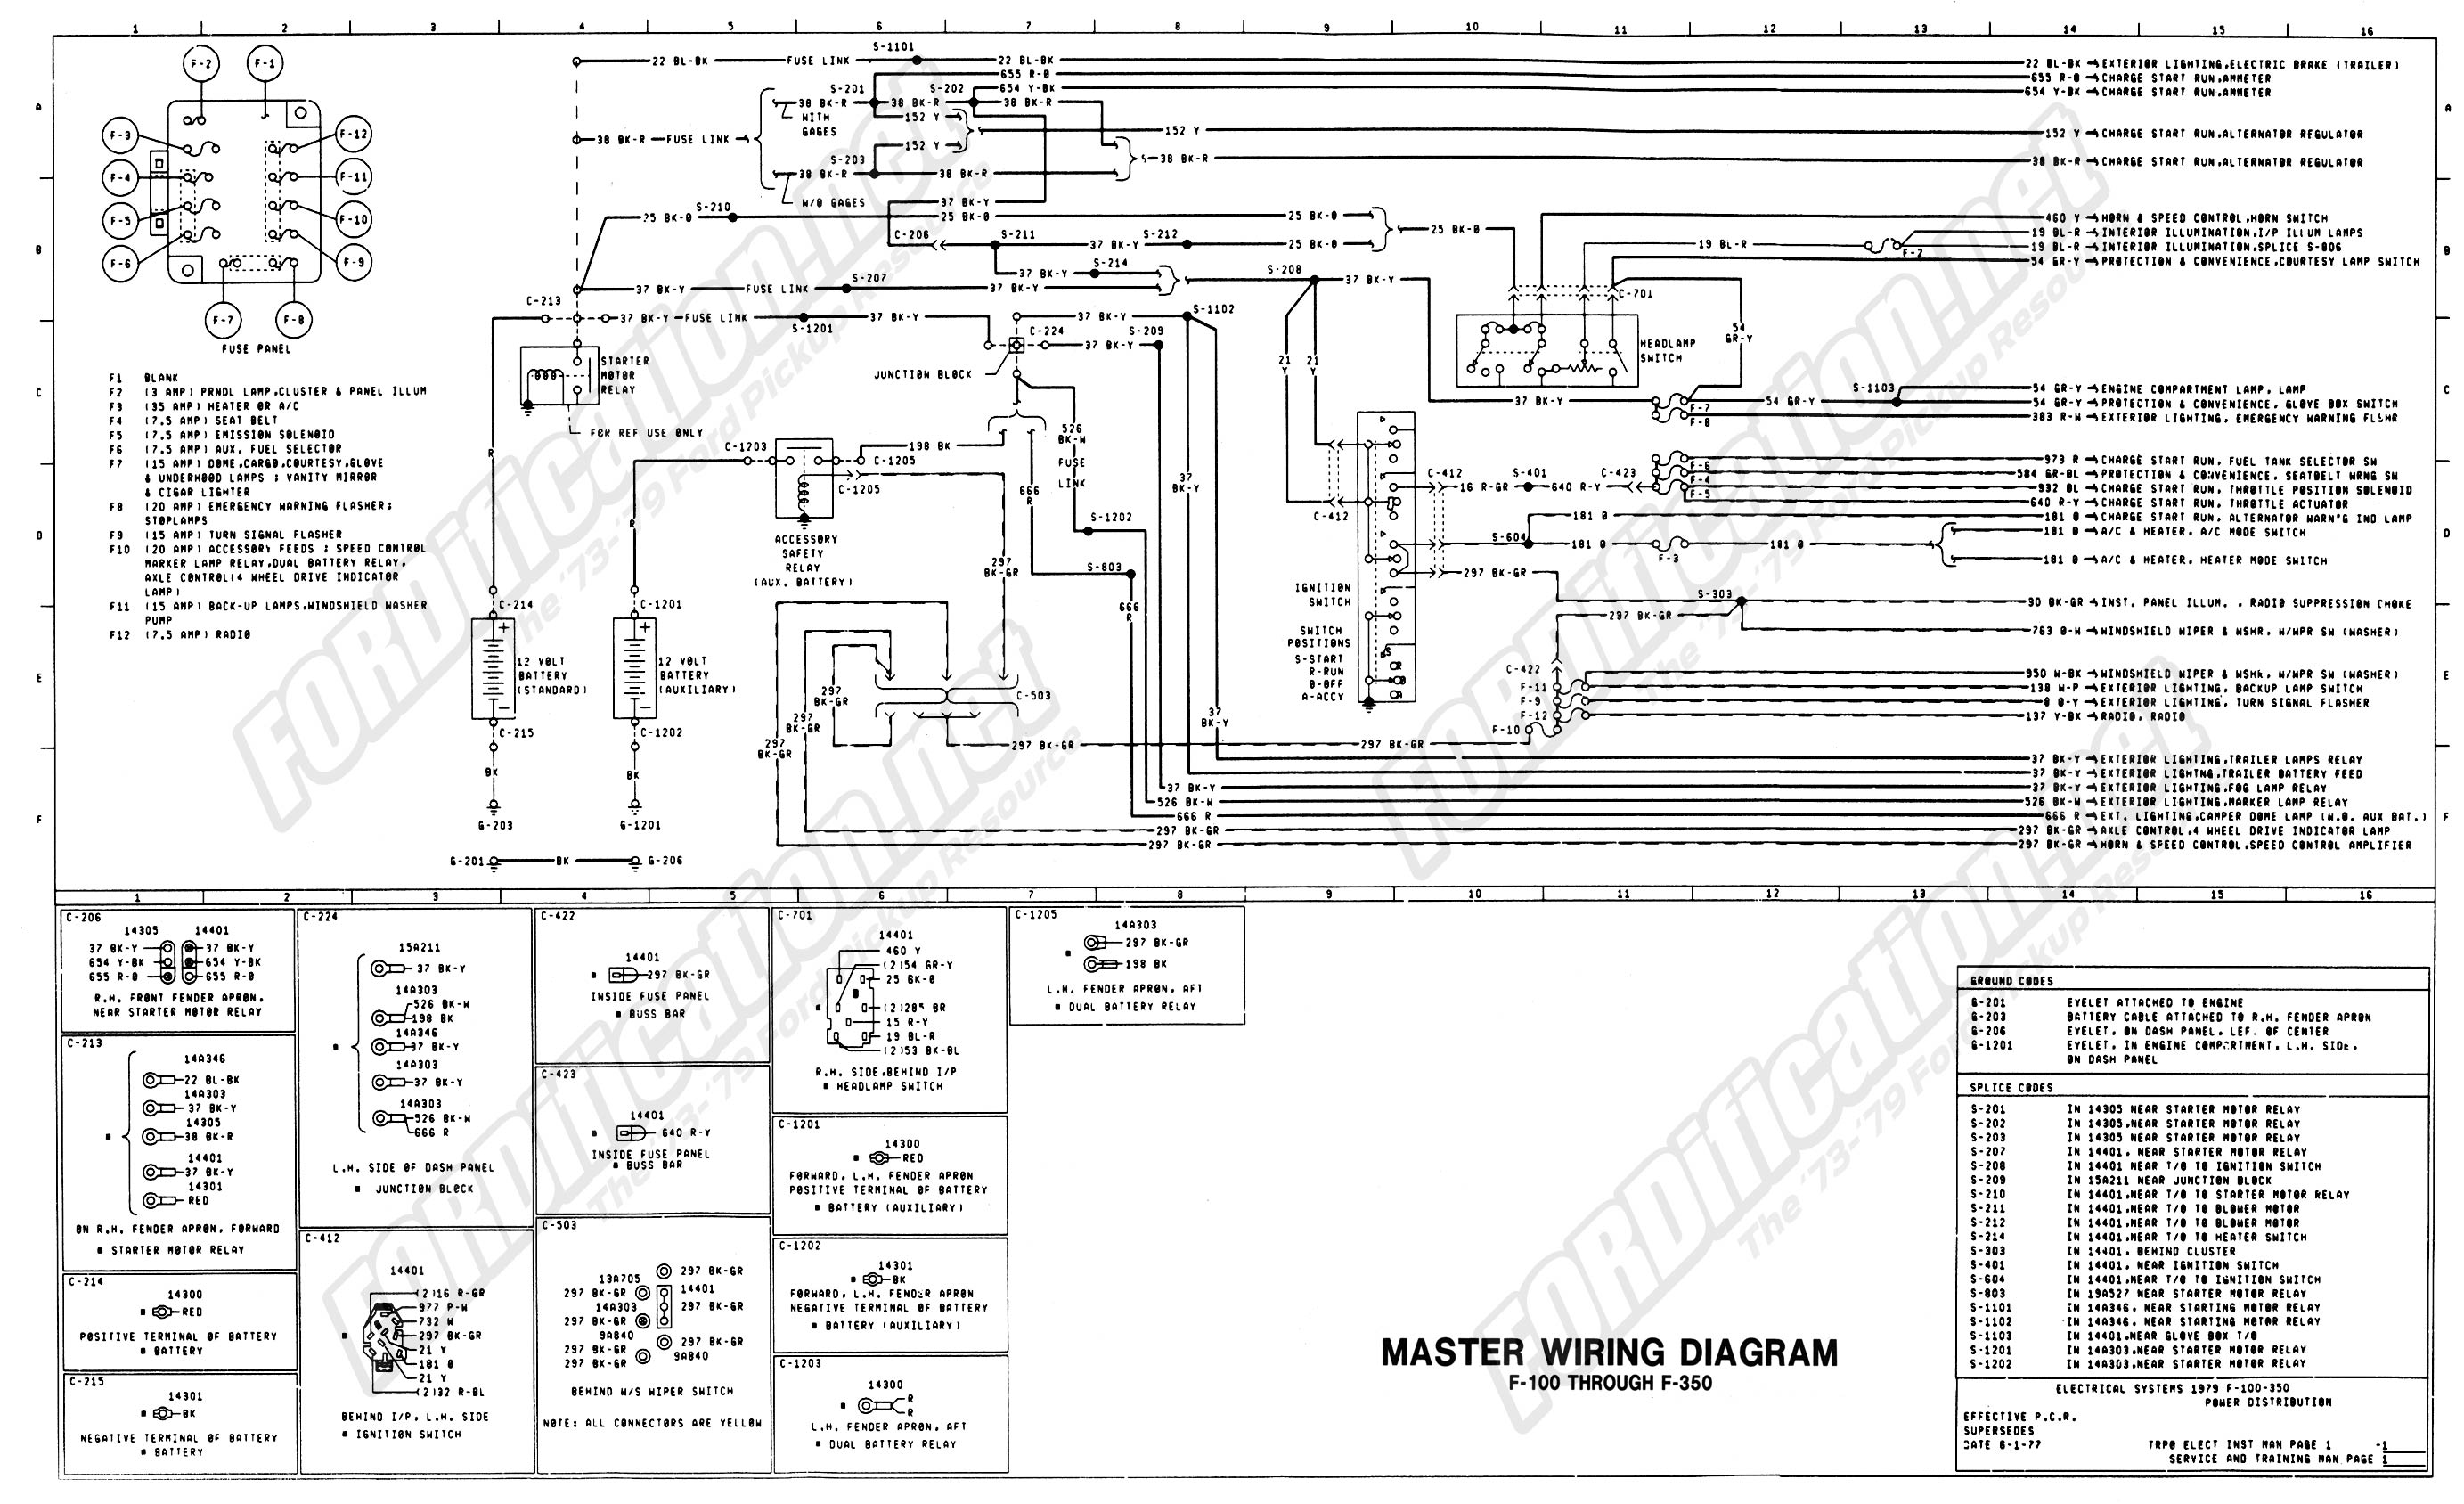 wiring_79master_1of9 wiring diagram for international truck the wiring diagram VT275 International CF 600 at gsmx.co